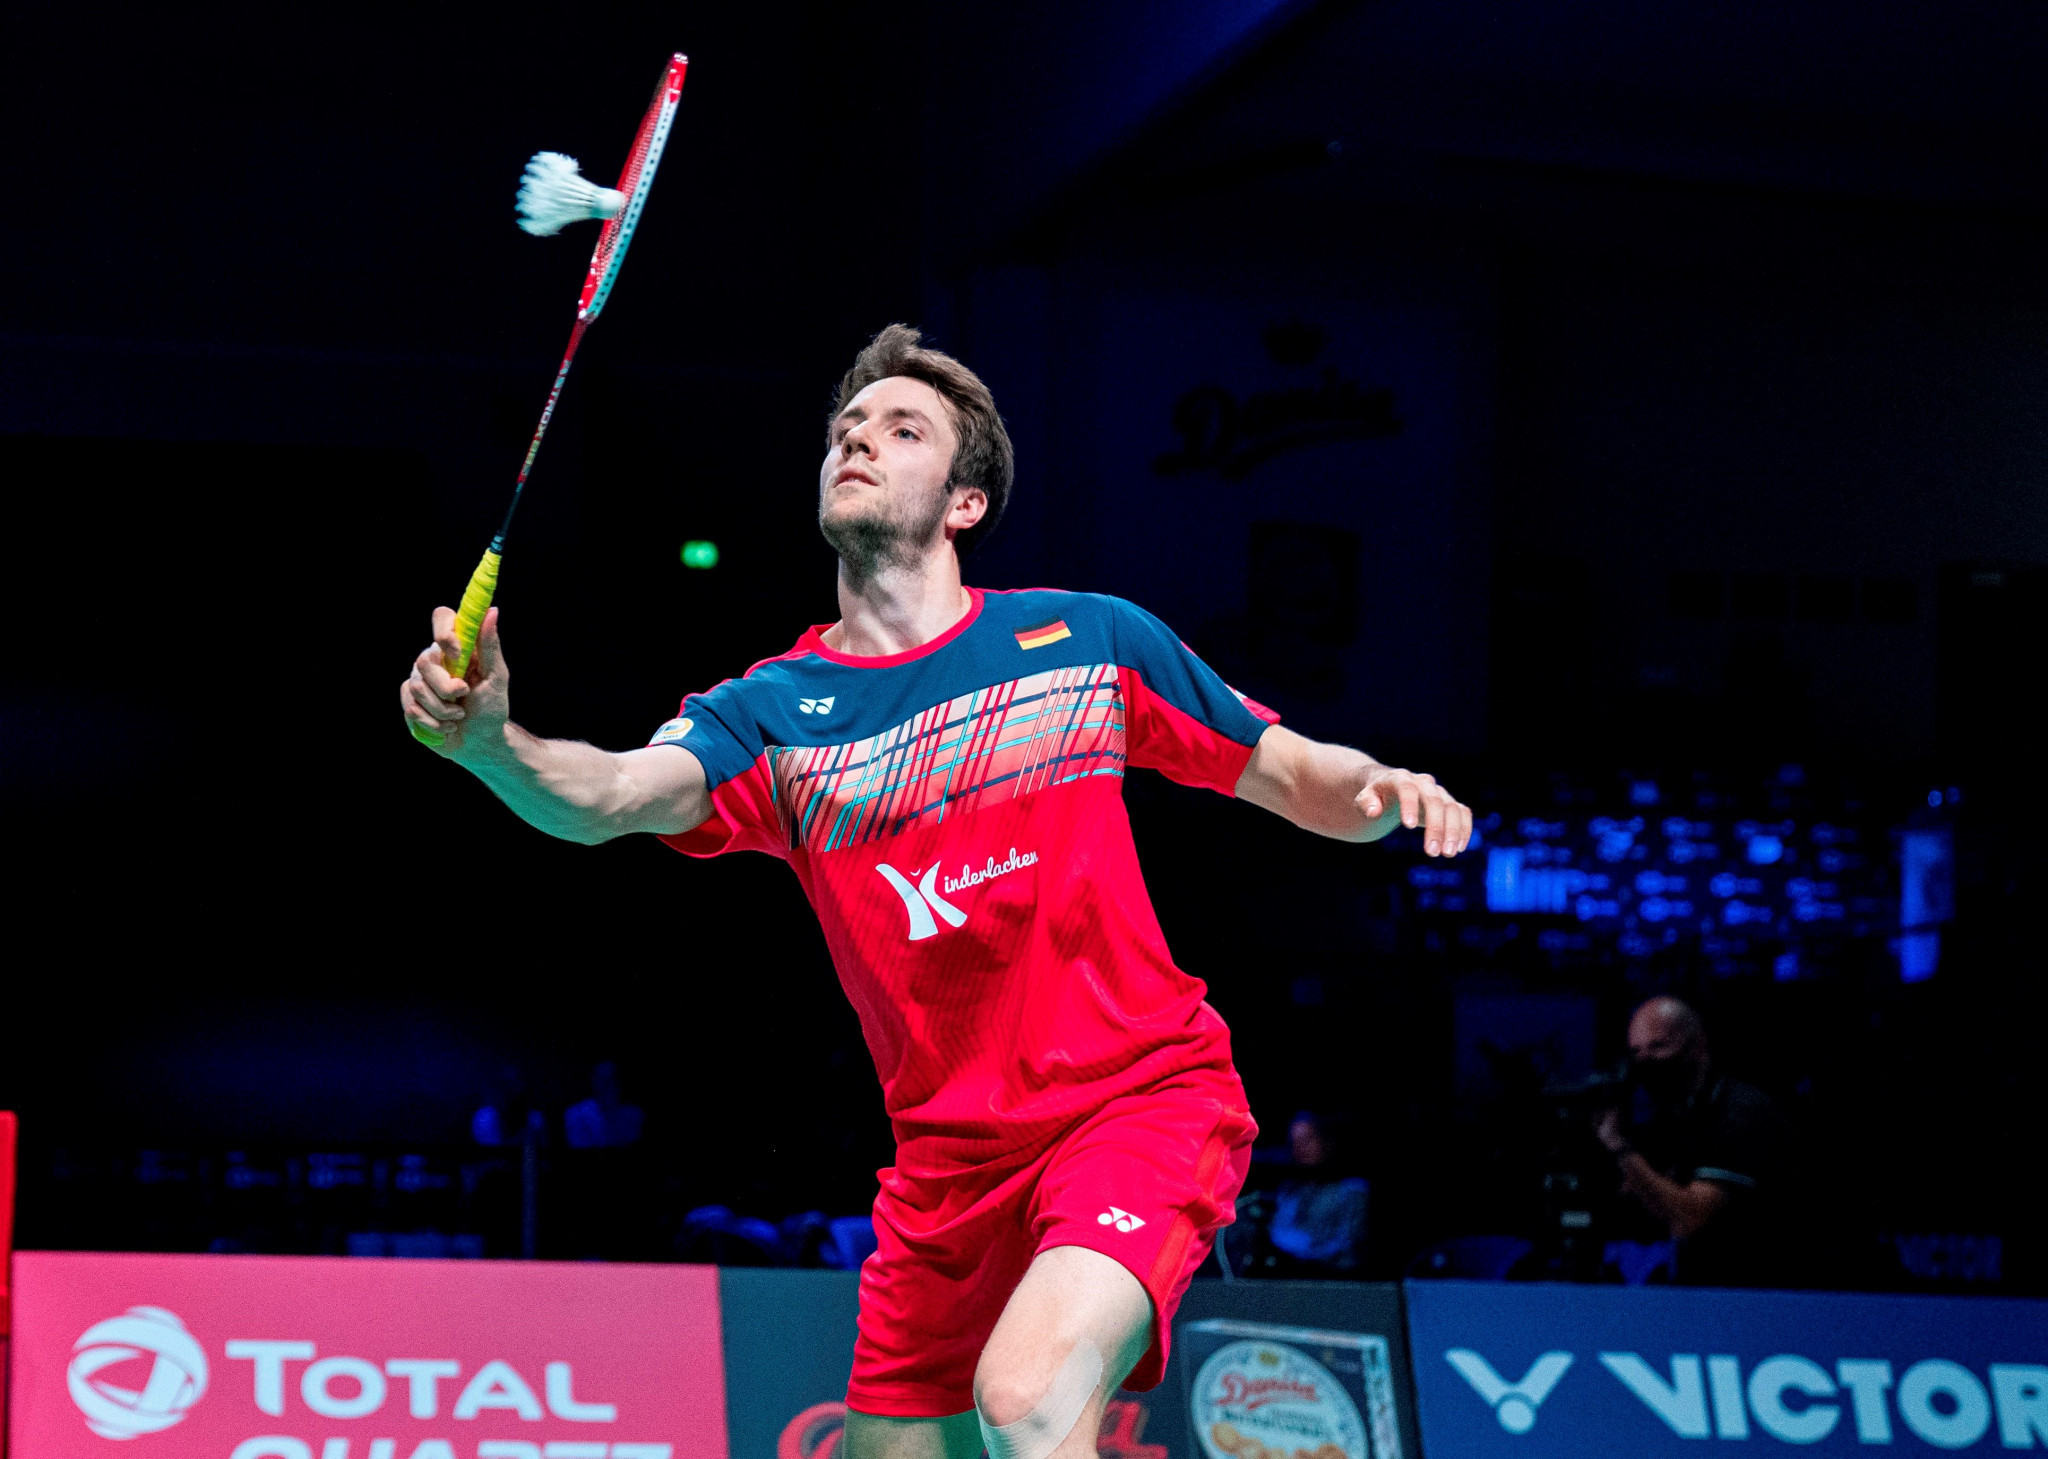 Clare and Flynn upset eighth seeds as European Badminton Championships begin